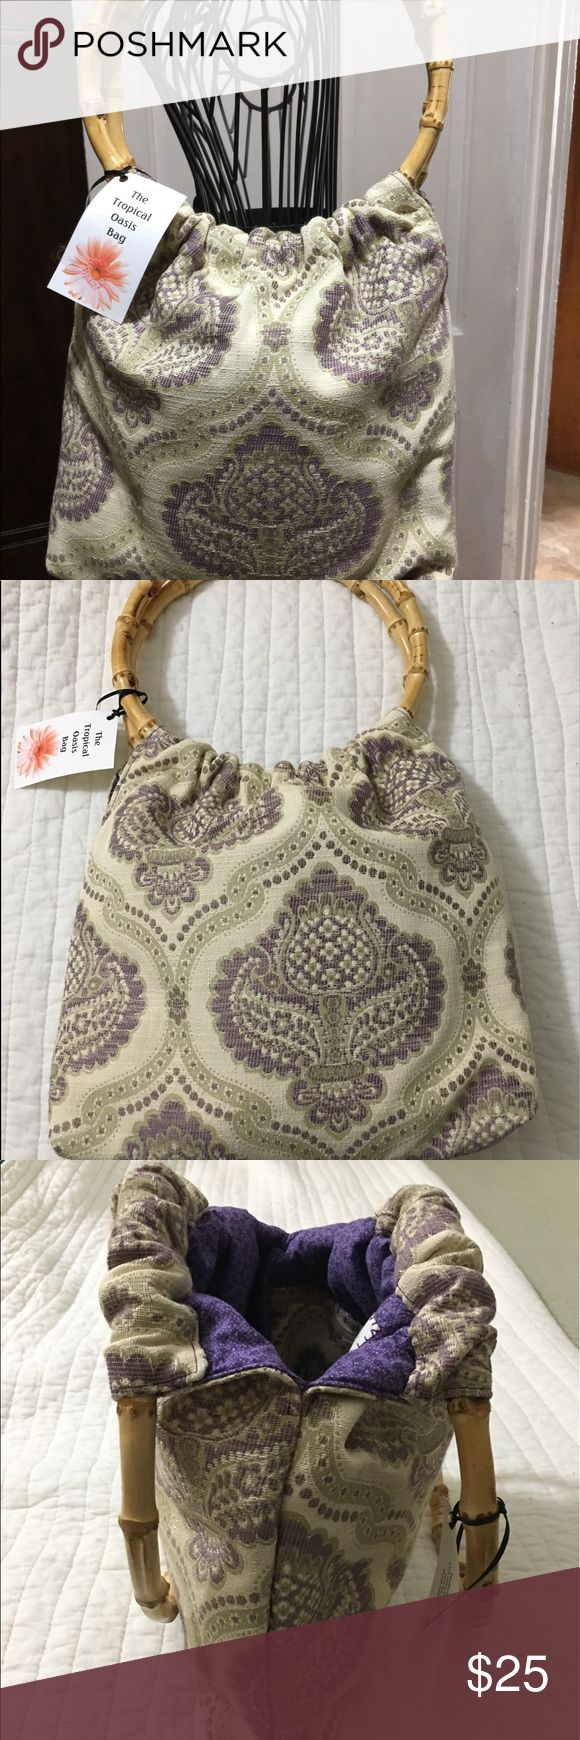 "🌴🌴The Tropical Oasis Bag🌴🌴 This purple, cream and olive bags has bamboo hoop handles.  It also has 3 open pockets and 2 pen pockets.  Handles have an 8"" drop.   🌴🌴🌴🌴🌴🌴🌴🌴🌴 daboriginals Bags"